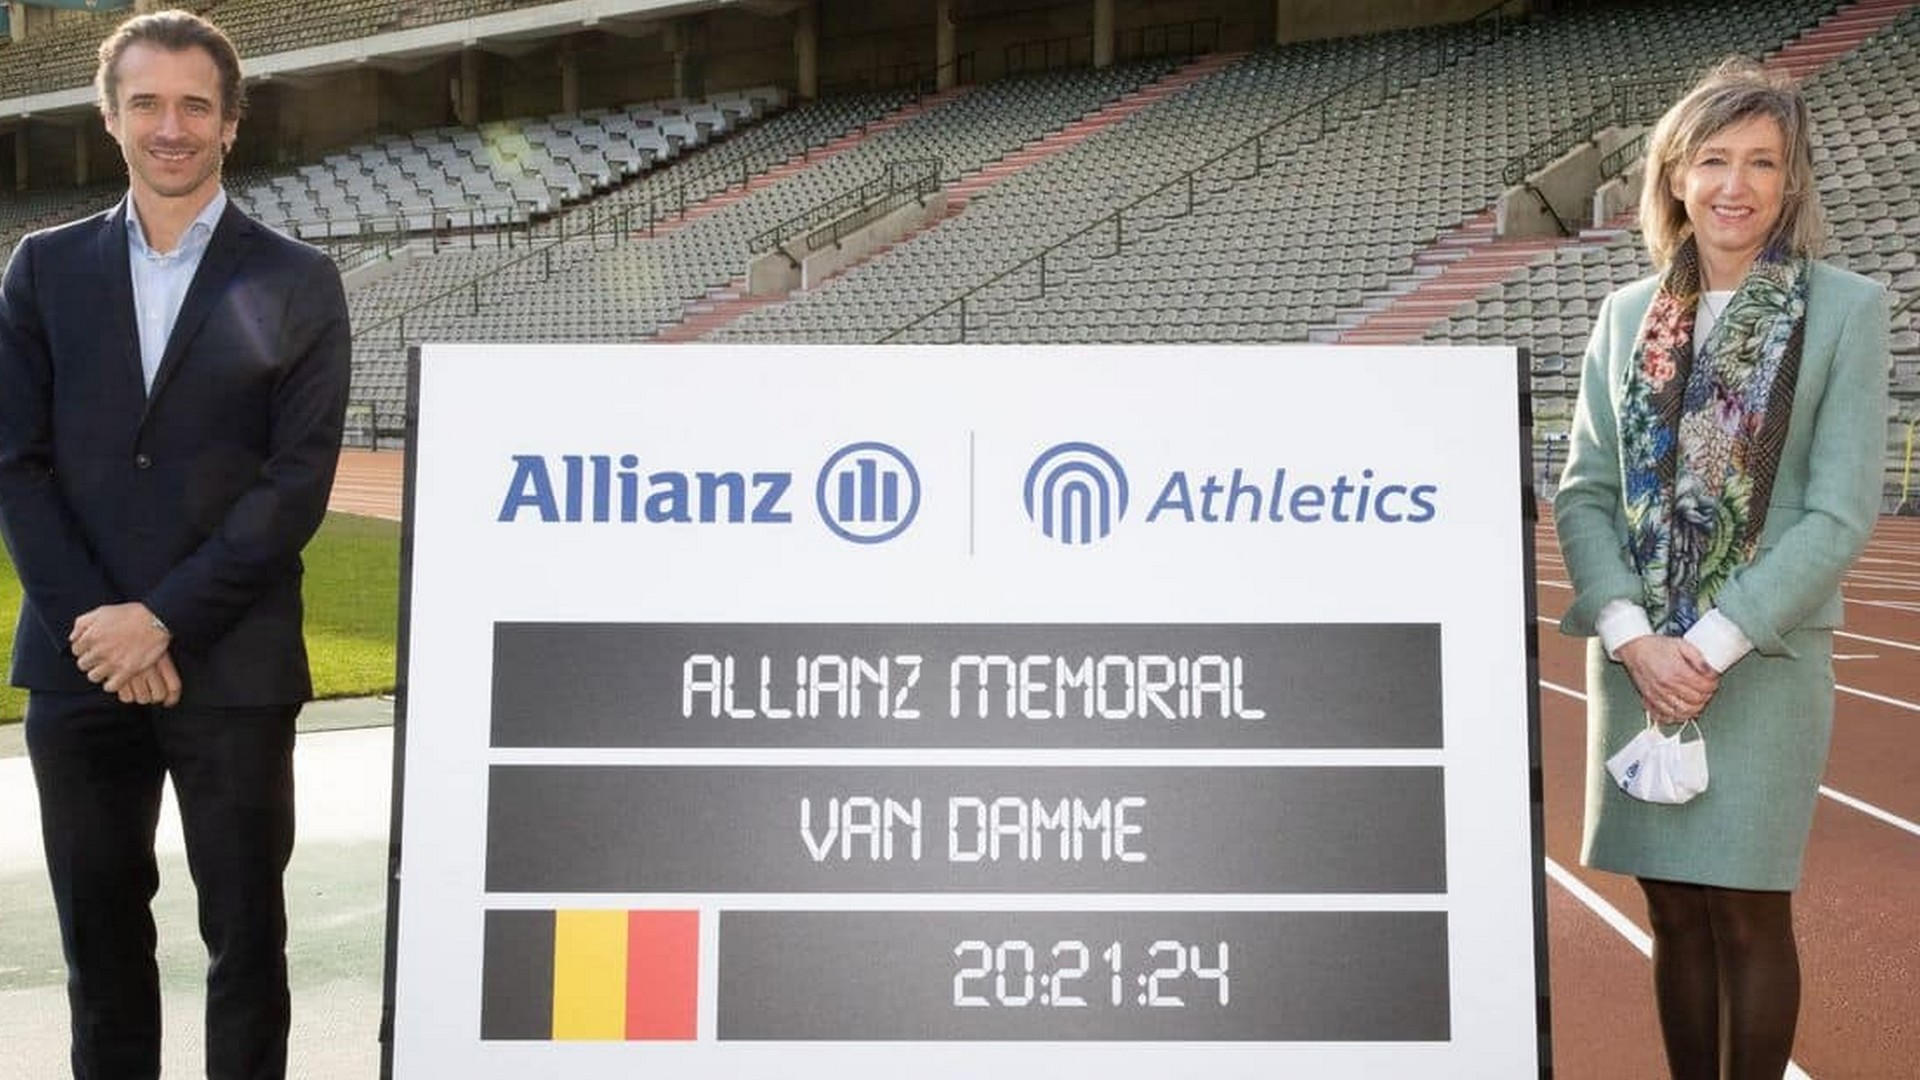 Allianz – Belgique